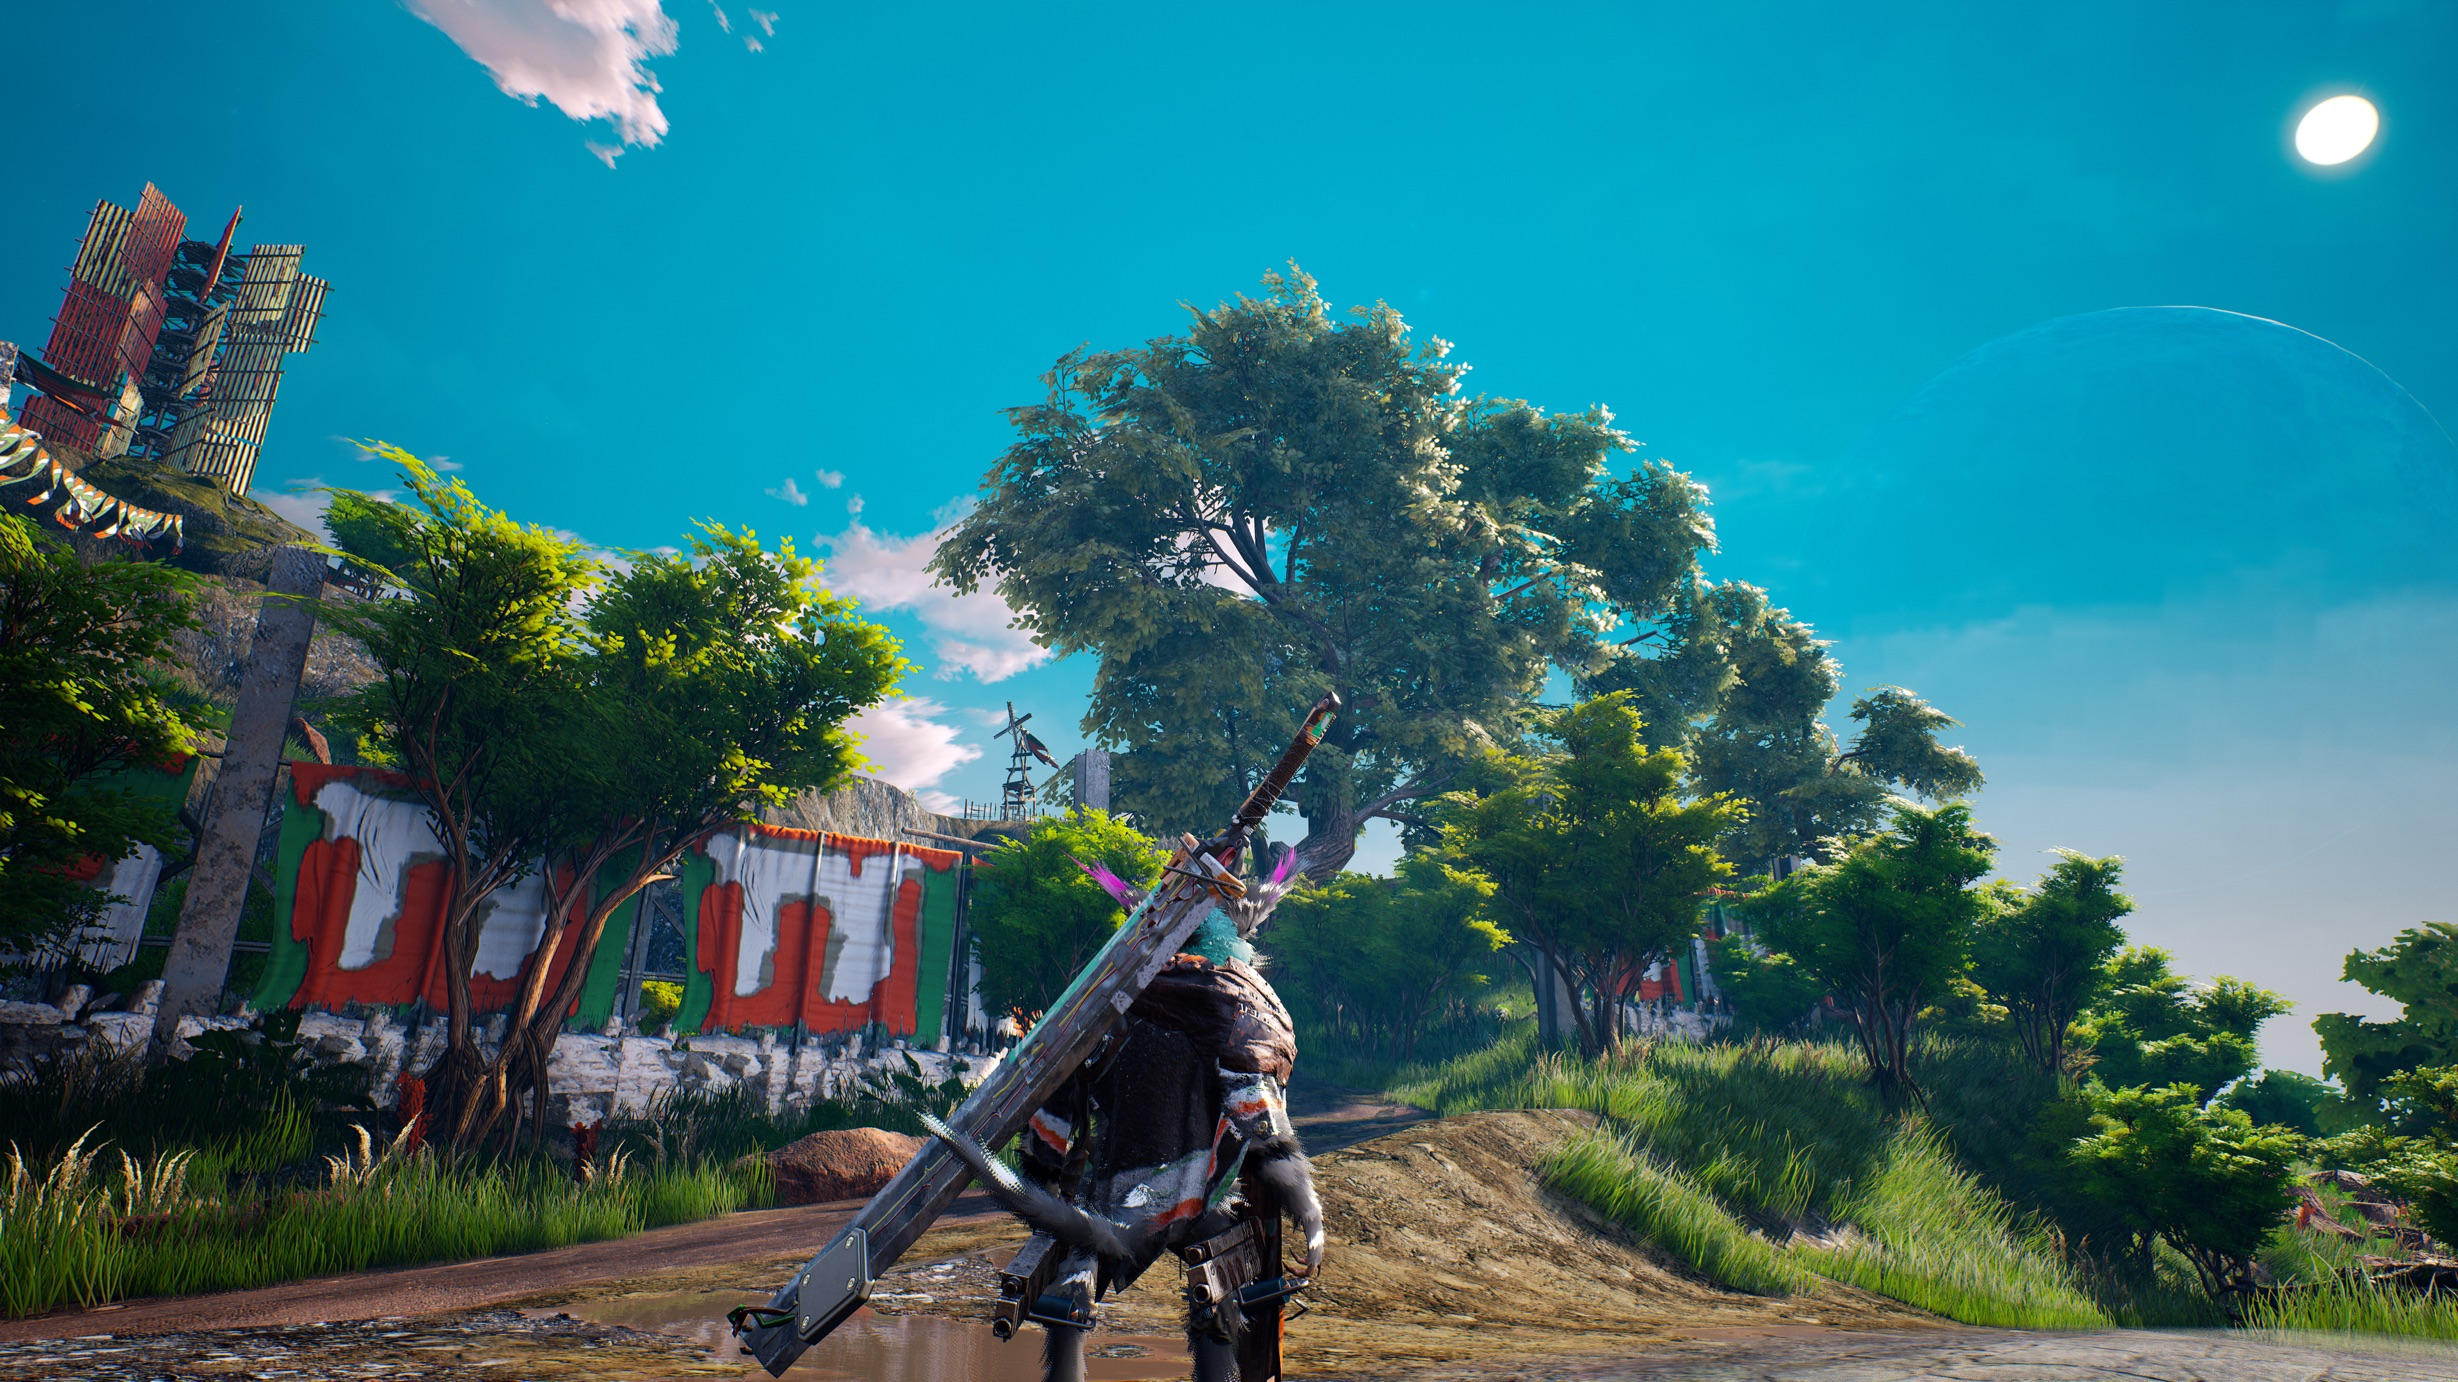 The protagonist of Biomutant looks out at a moss-laden outpost, deep in a green forest.